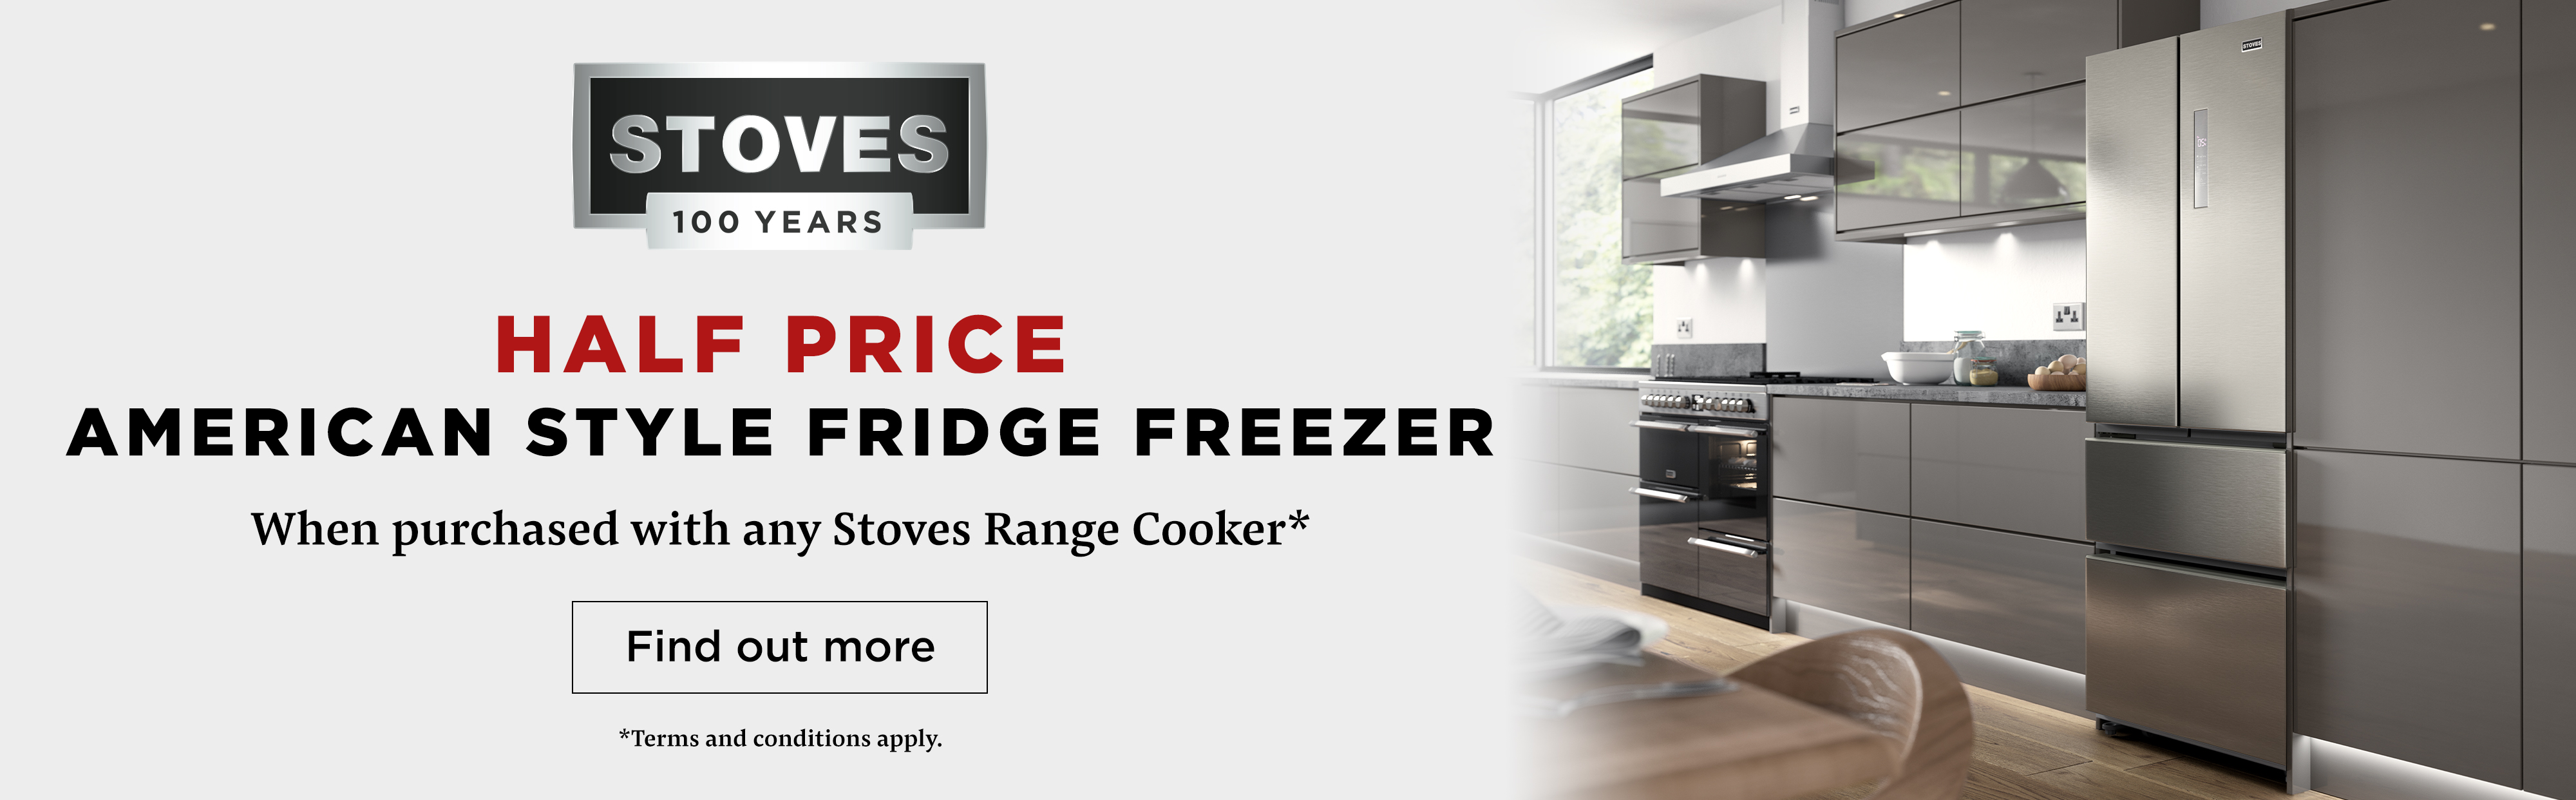 Stoves Half Price American Refrigeration